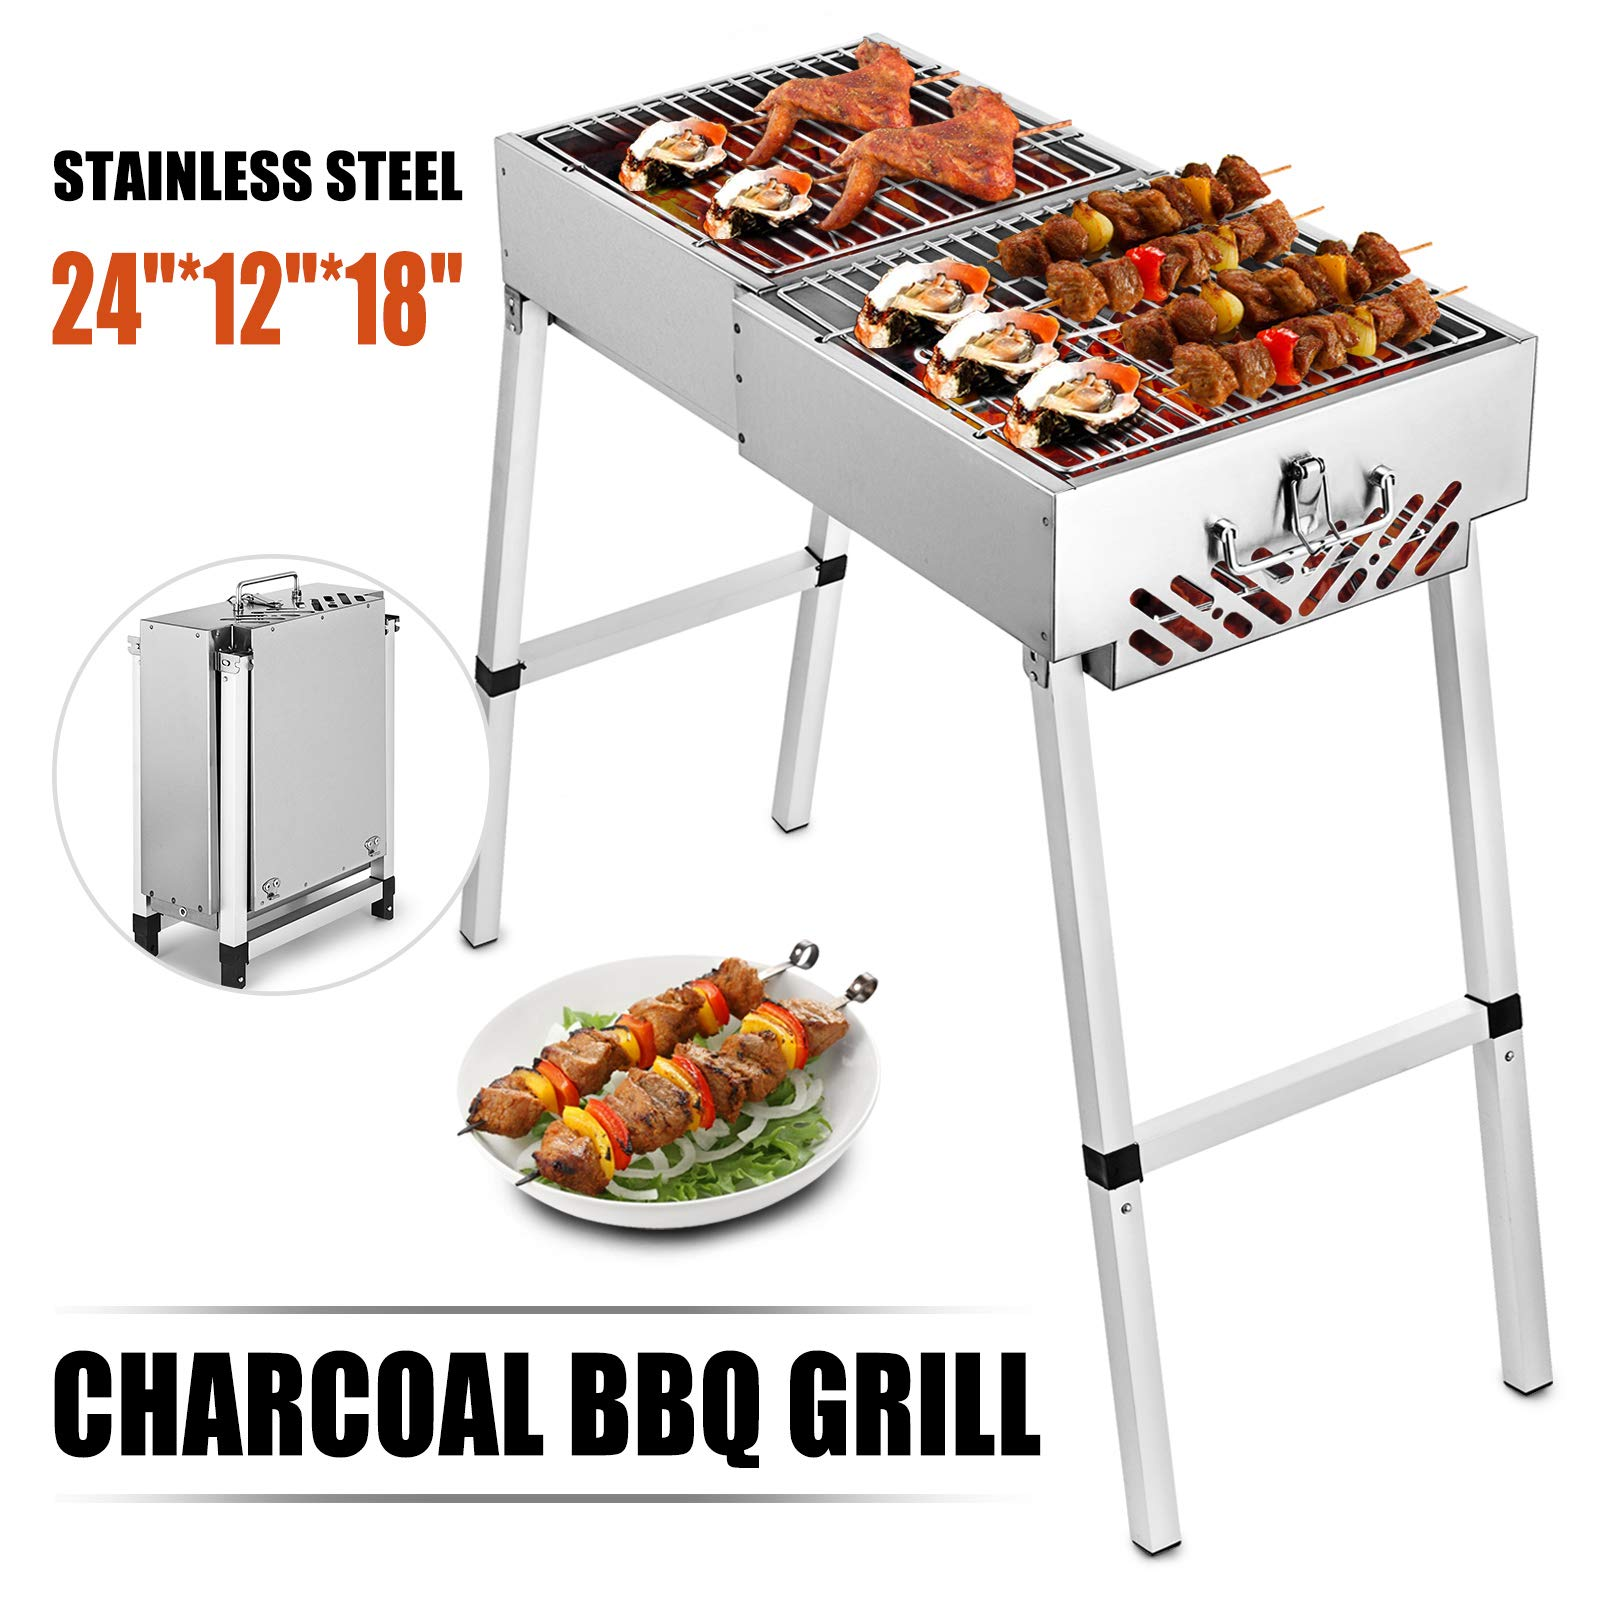 VEVOR Folded Portable Charcoal BBQ Grill Outdoor Barbecue Charcoal Stainless Steel Kebab Grill Folding Grill Portable Grill Perfect for Camping (24'' x 12'') by VEVOR